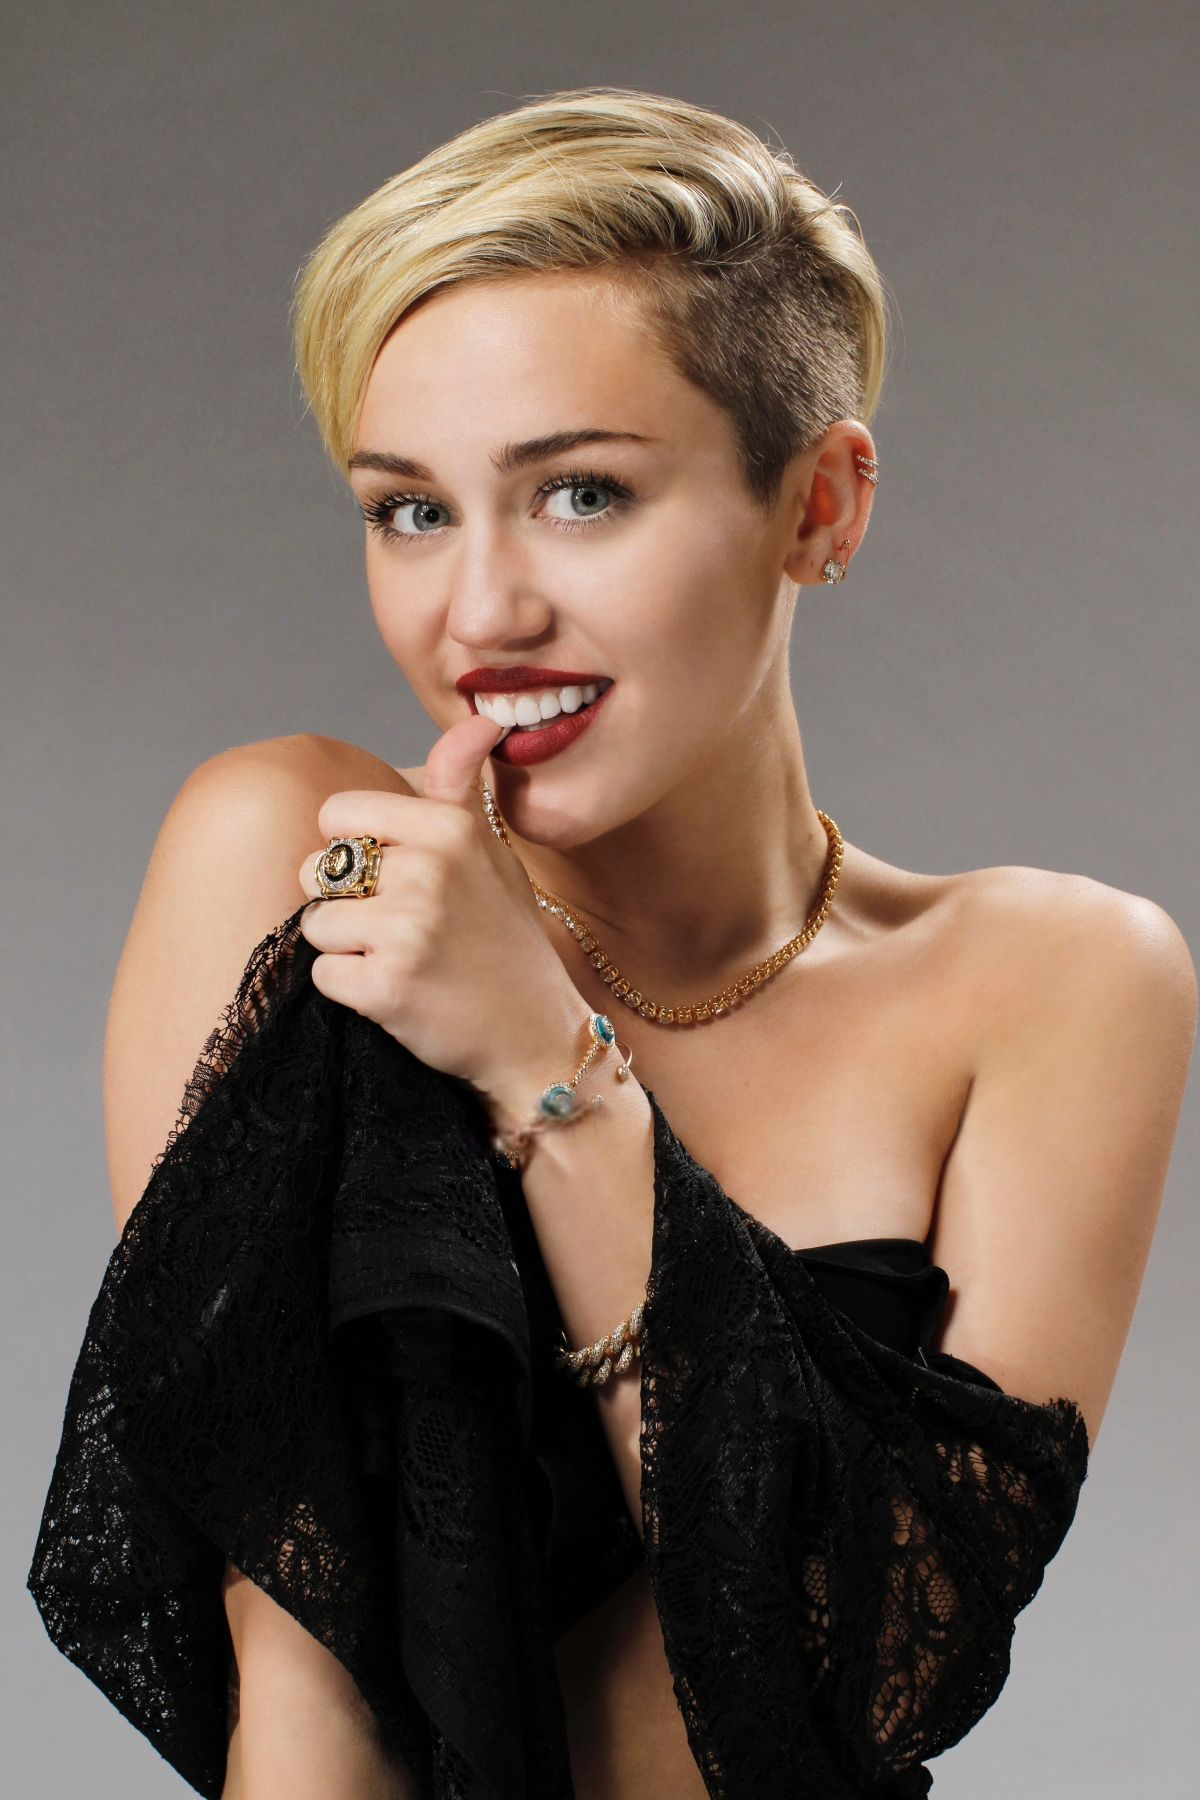 Miley Cyrus At Saturday Night Live Photoshoot by Andrew ... Miley Cyrus